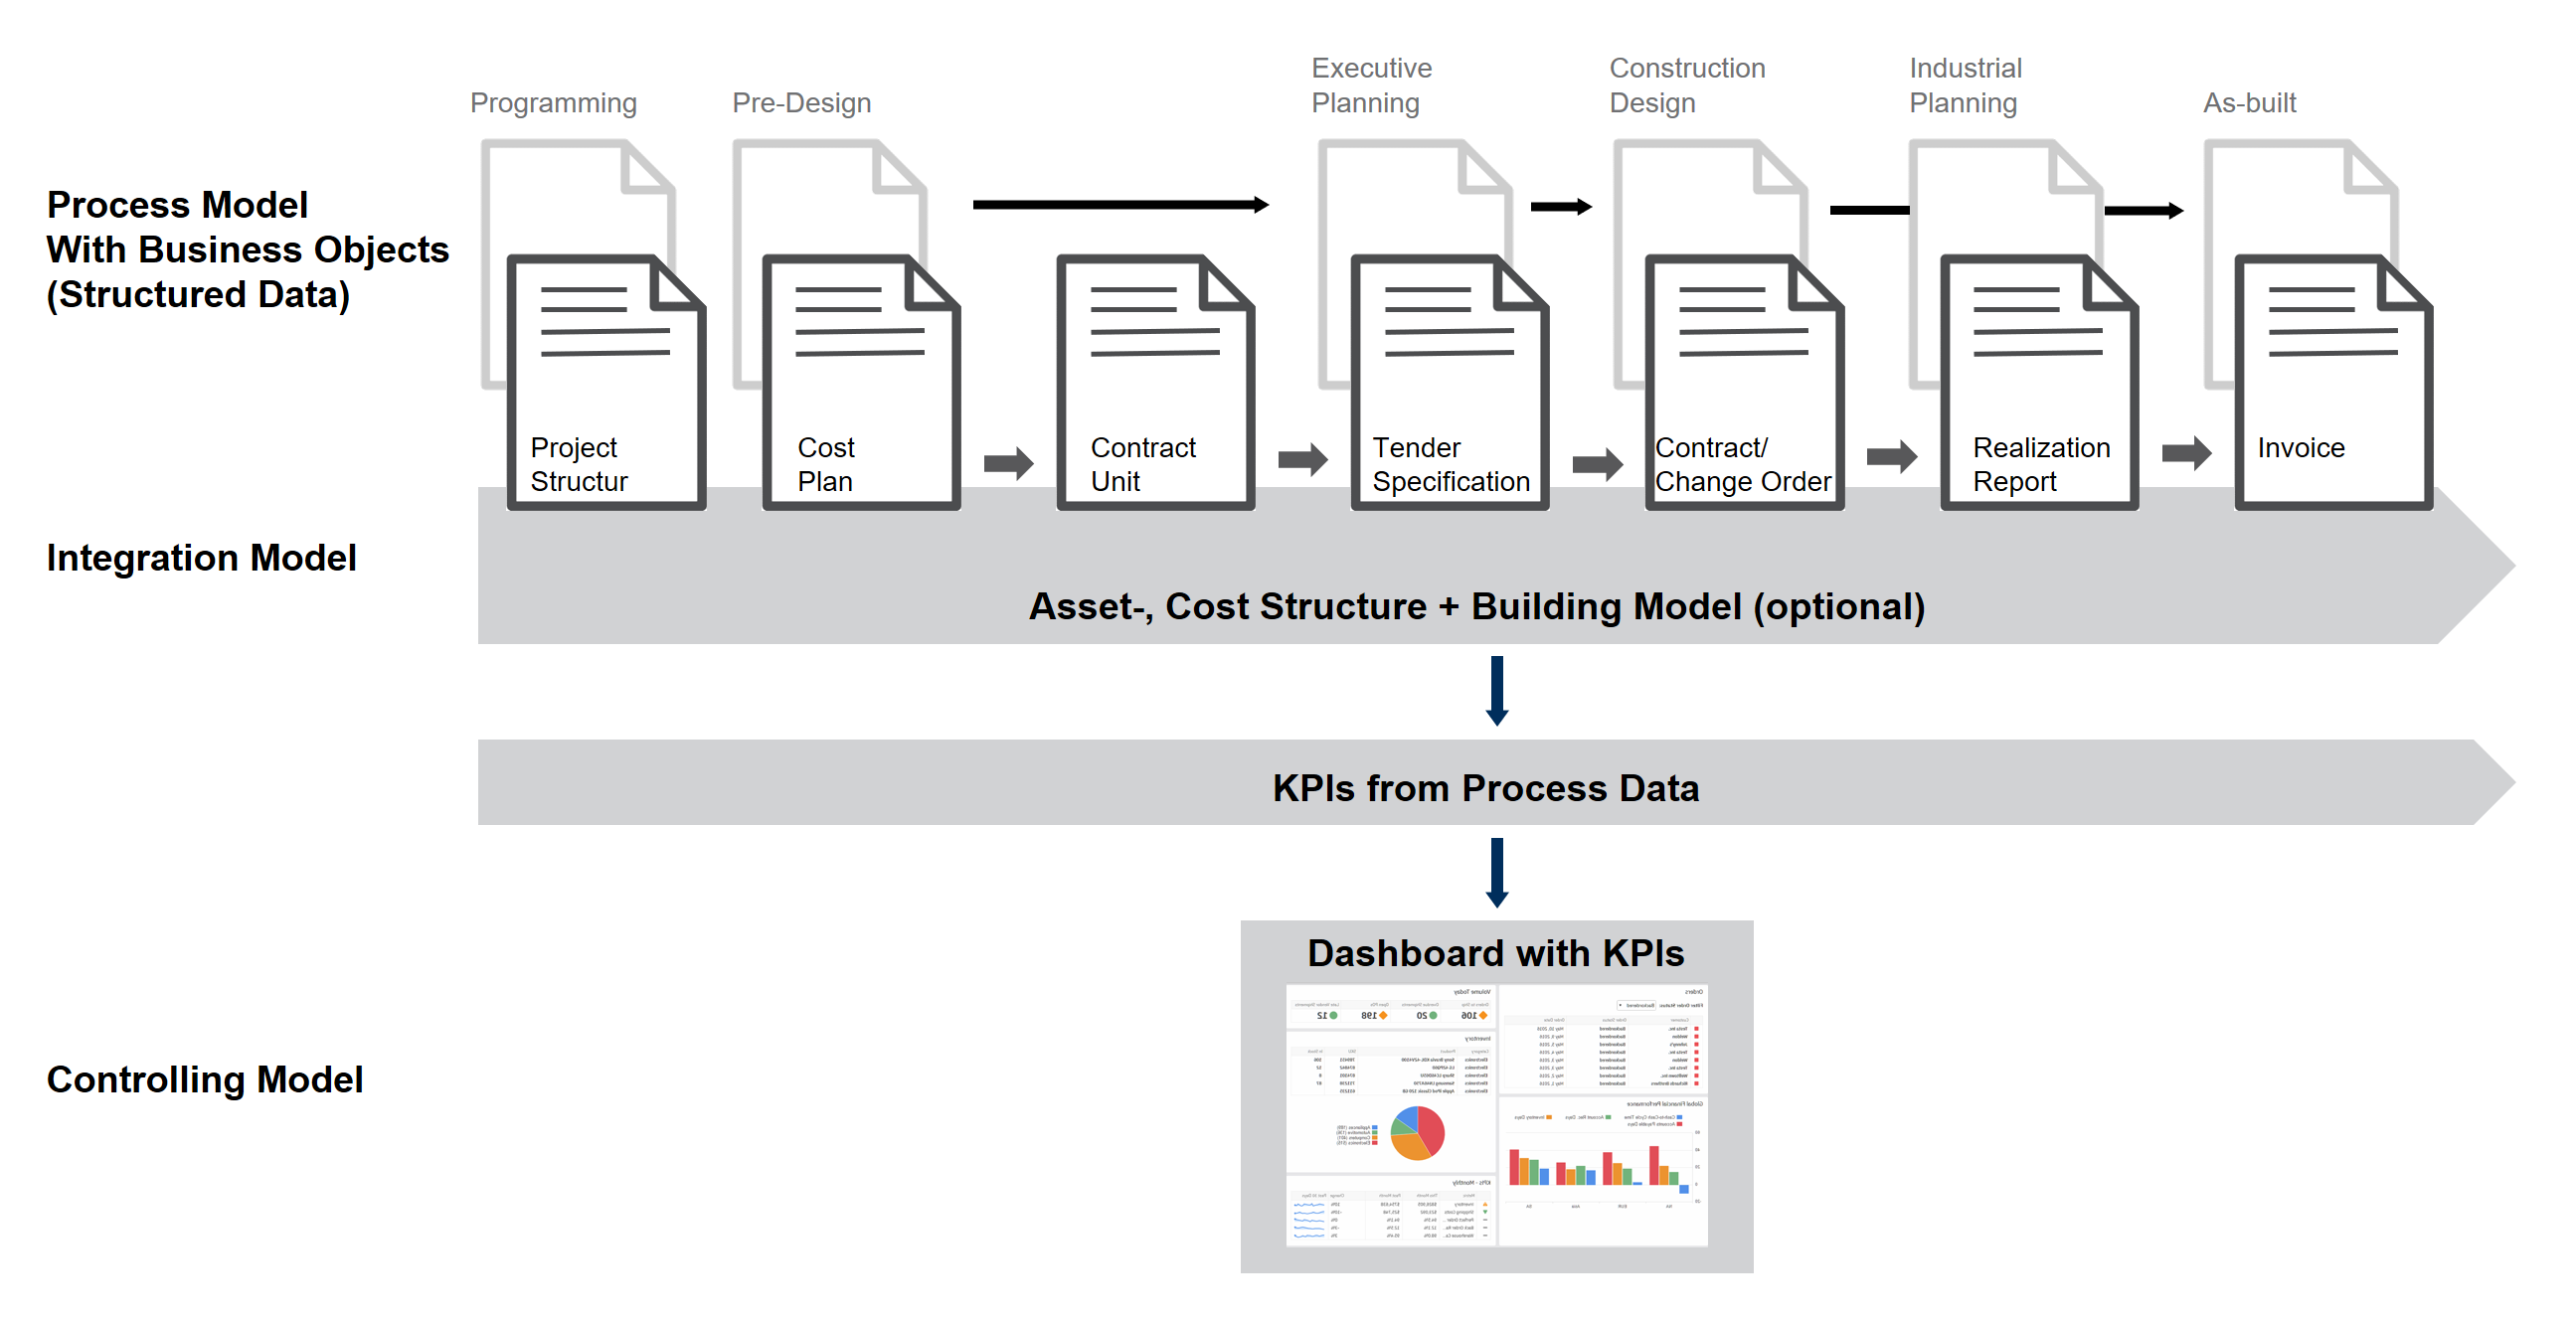 Process and Controlling Model